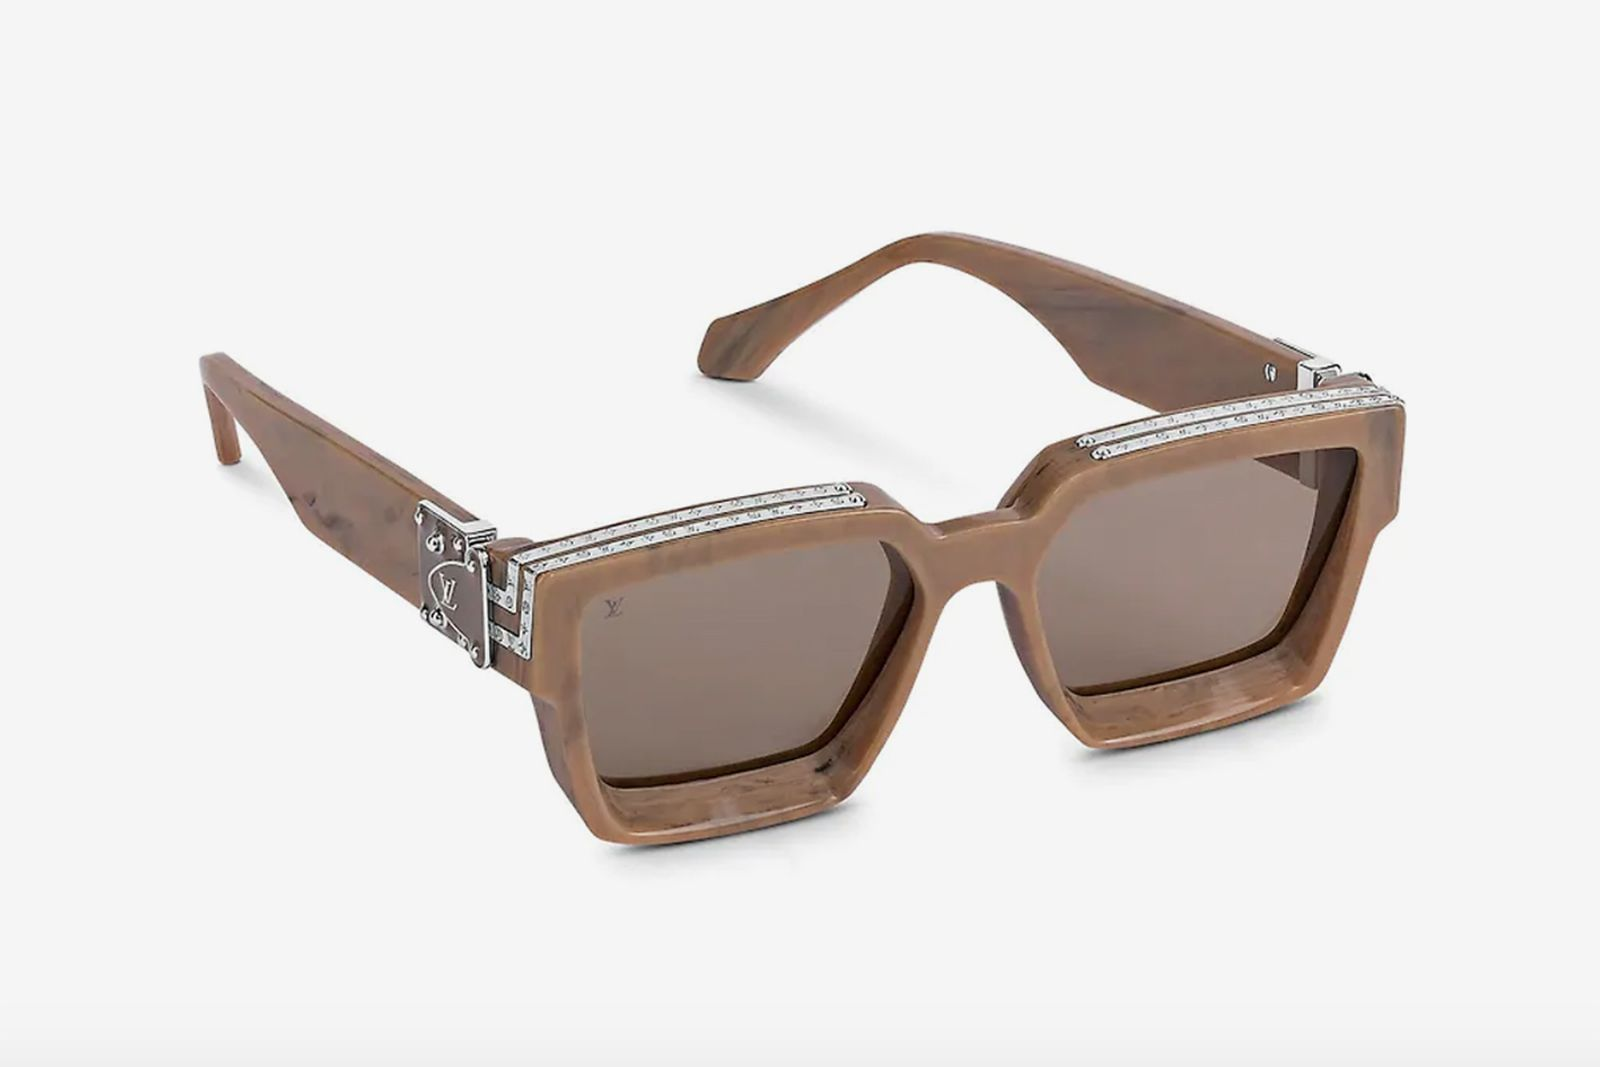 Louis Vuitton 1.1 Millionaires sunglasses